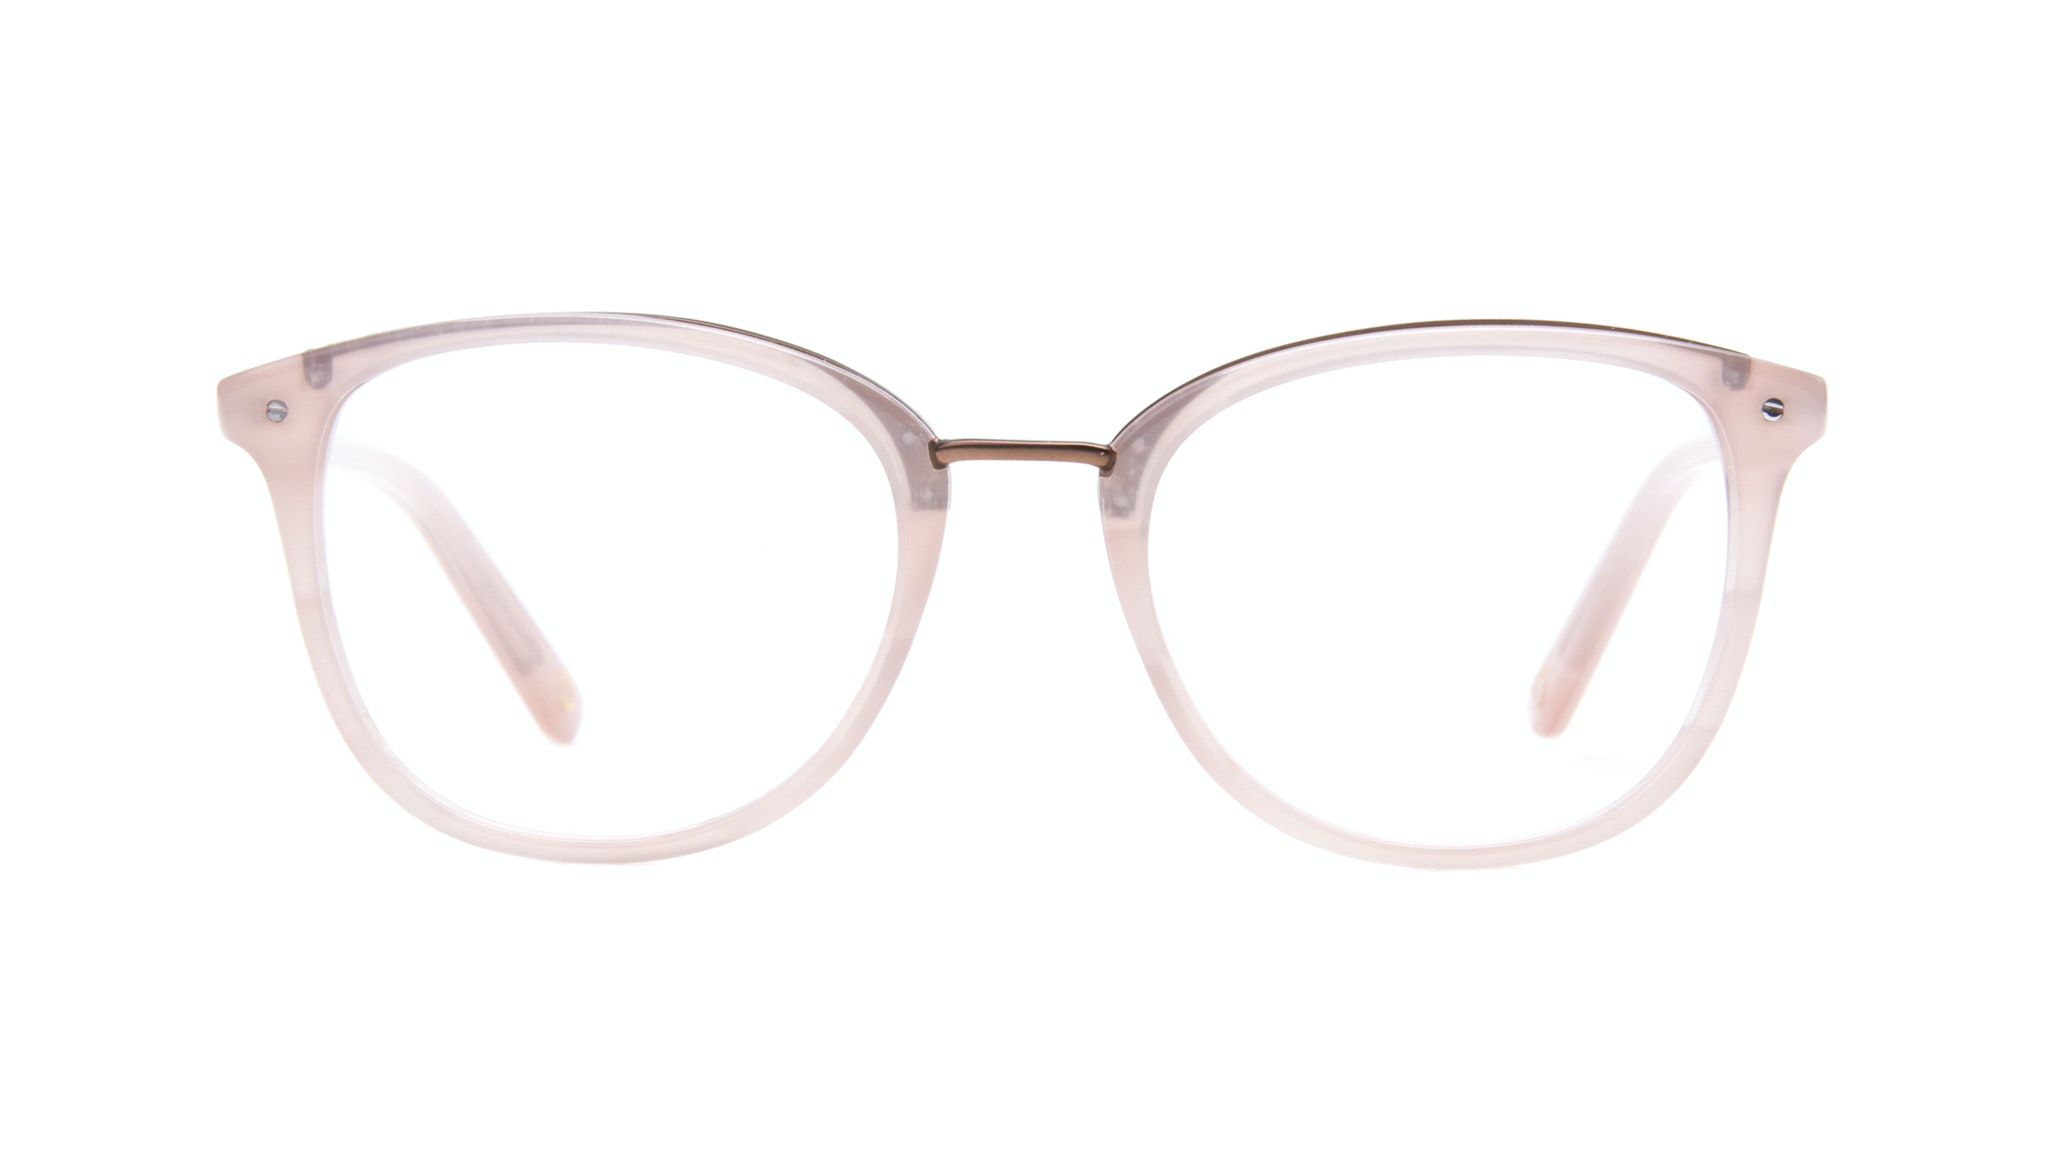 Affordable Fashion Glasses Square Round Eyeglasses Women Bella Blush